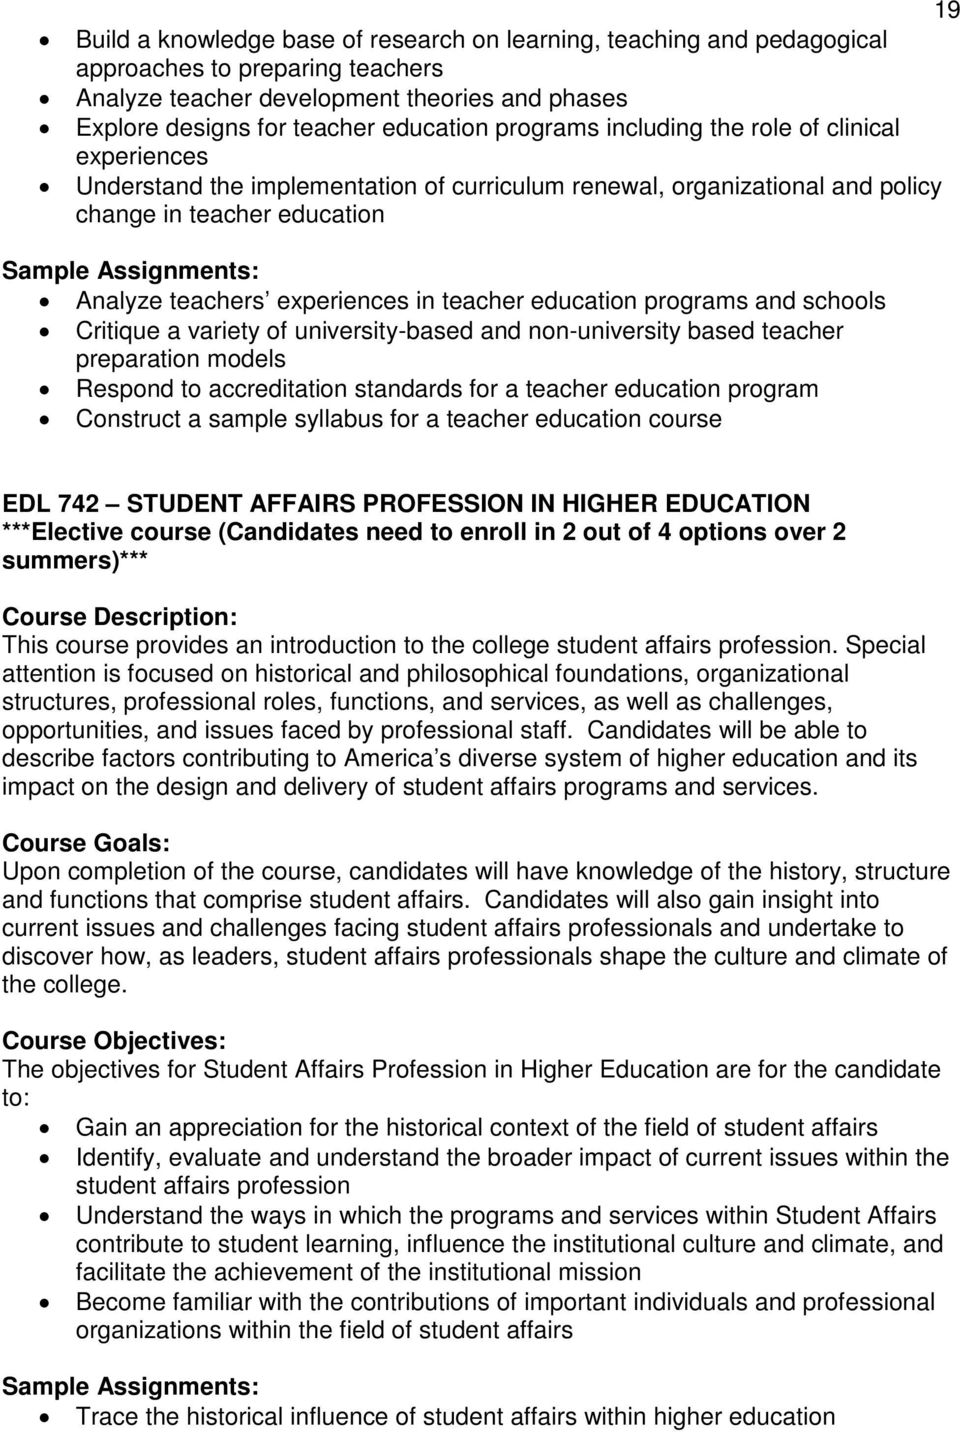 experiences in teacher education programs and schools Critique a variety of university-based and non-university based teacher preparation models Respond to accreditation standards for a teacher